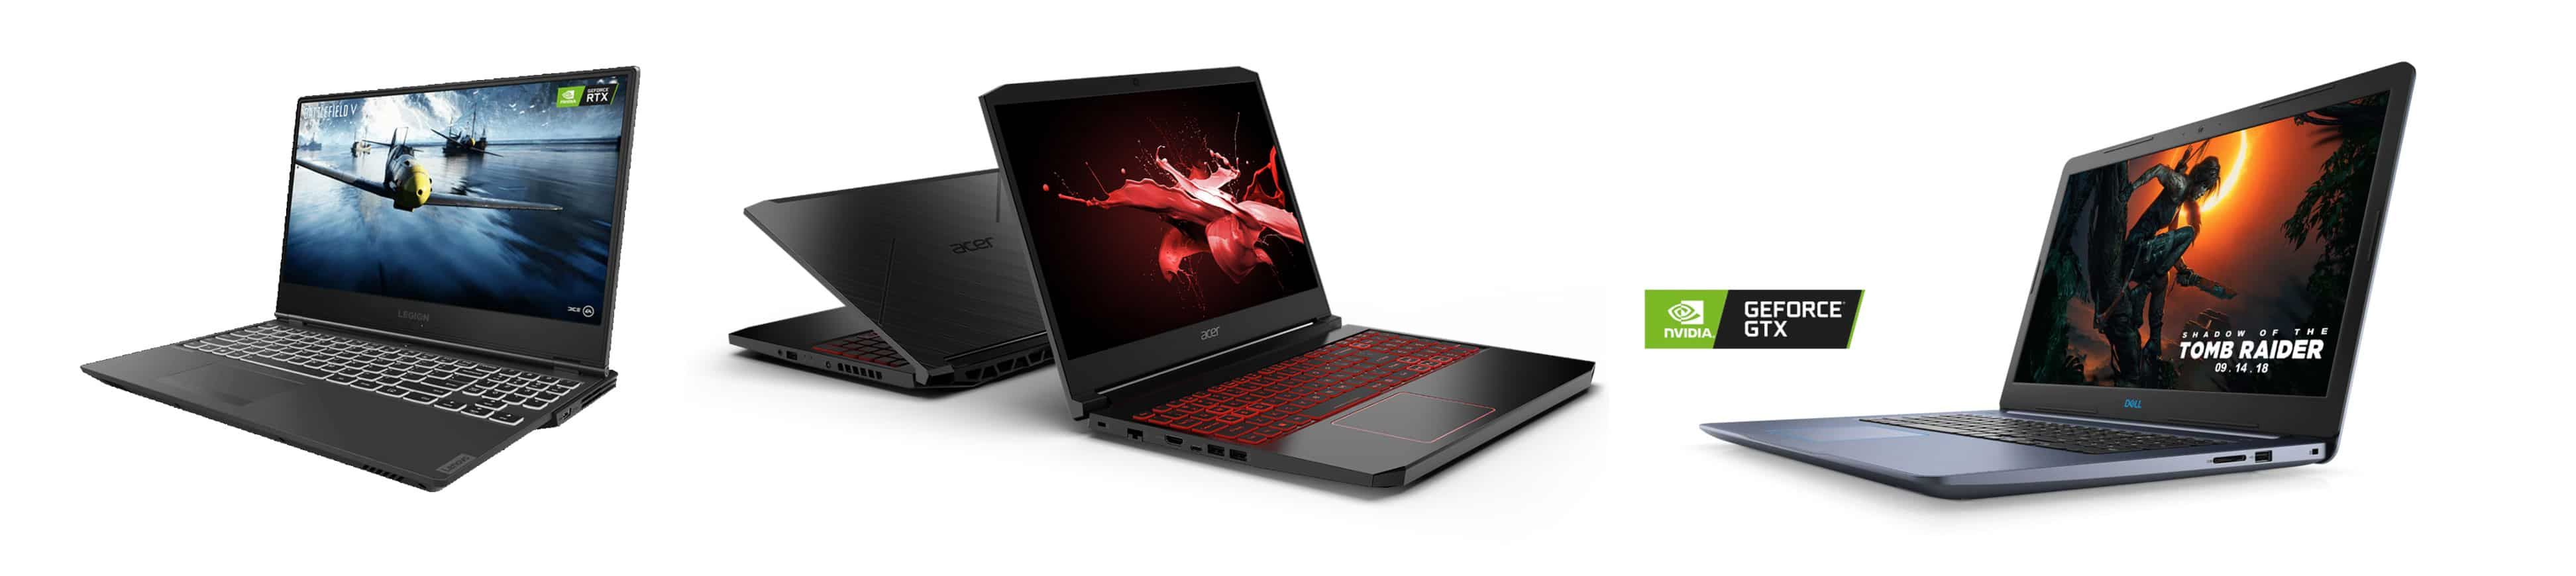 Gaming laptops under $1000: Lenovo Legion Y540, Acer Nitro 5 or Dell G3 Gaming